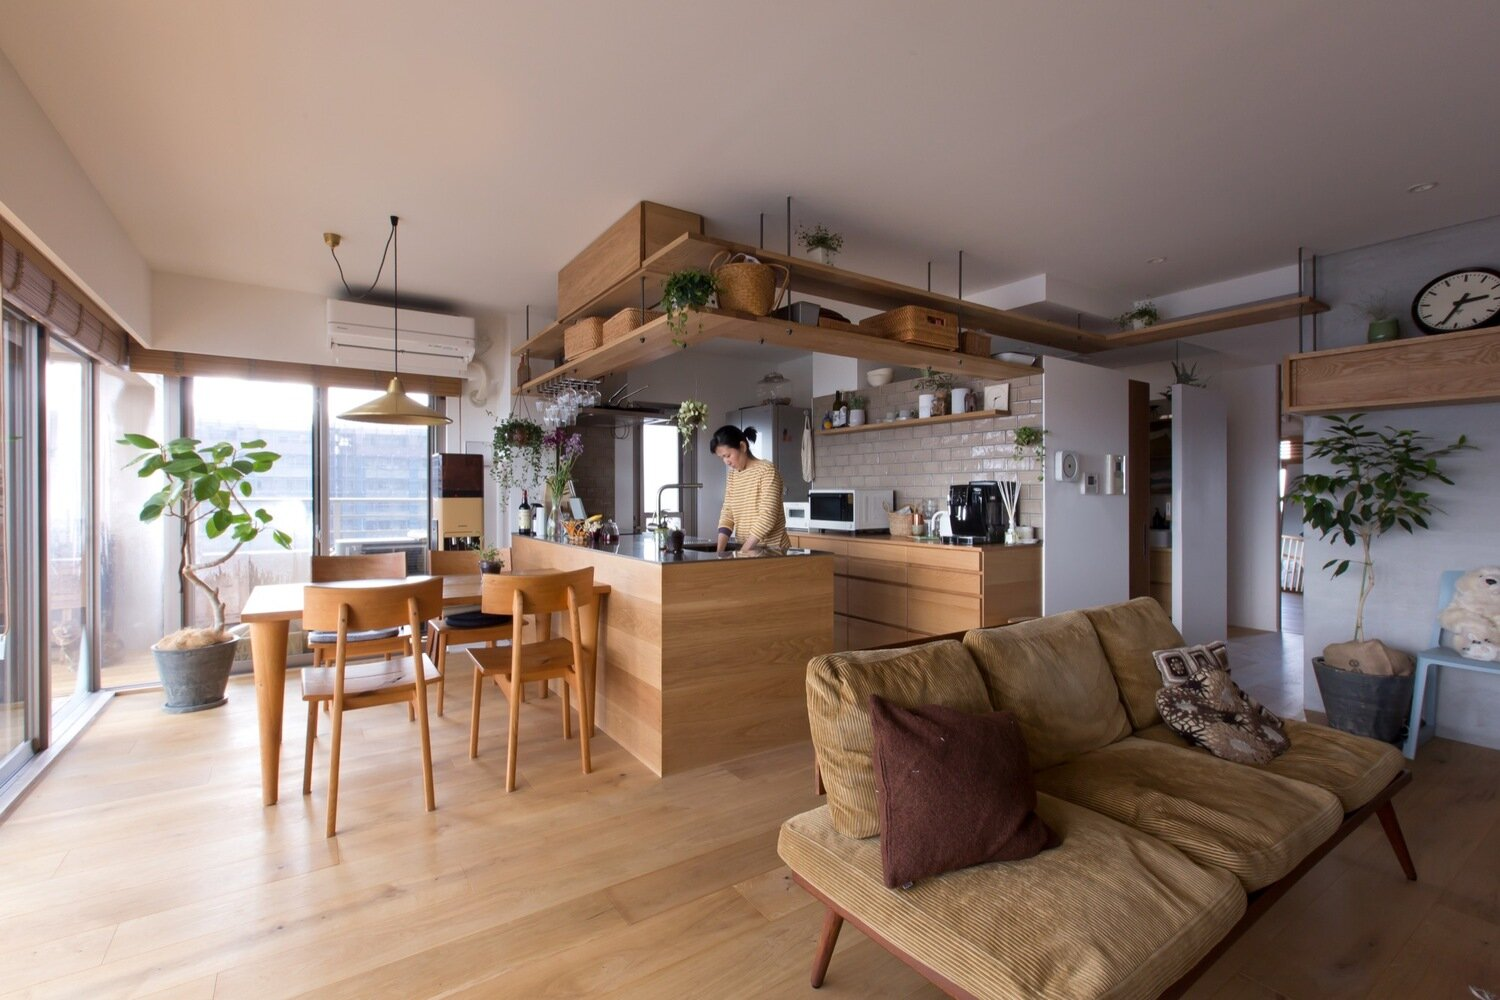 A Contemporary Apartment For People And Cats By ALTS Design Office